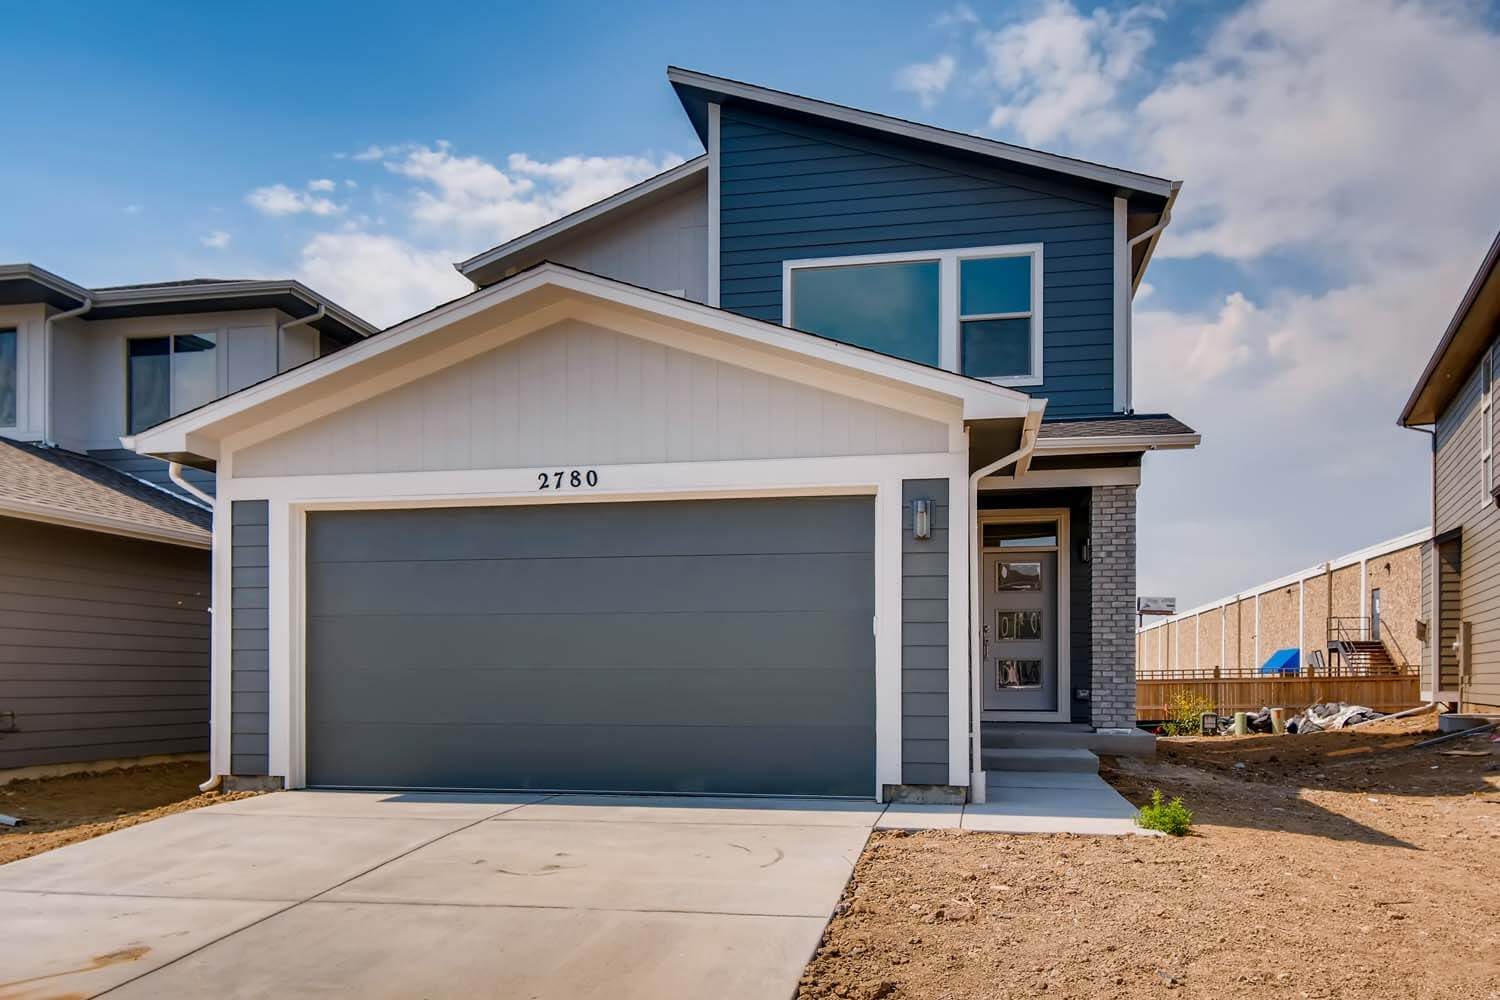 New Denver Single Family Home Quick Possession Jett in Westminster Station, located at 2780 W 68th Avenue, Denver Built By Cardel Homes